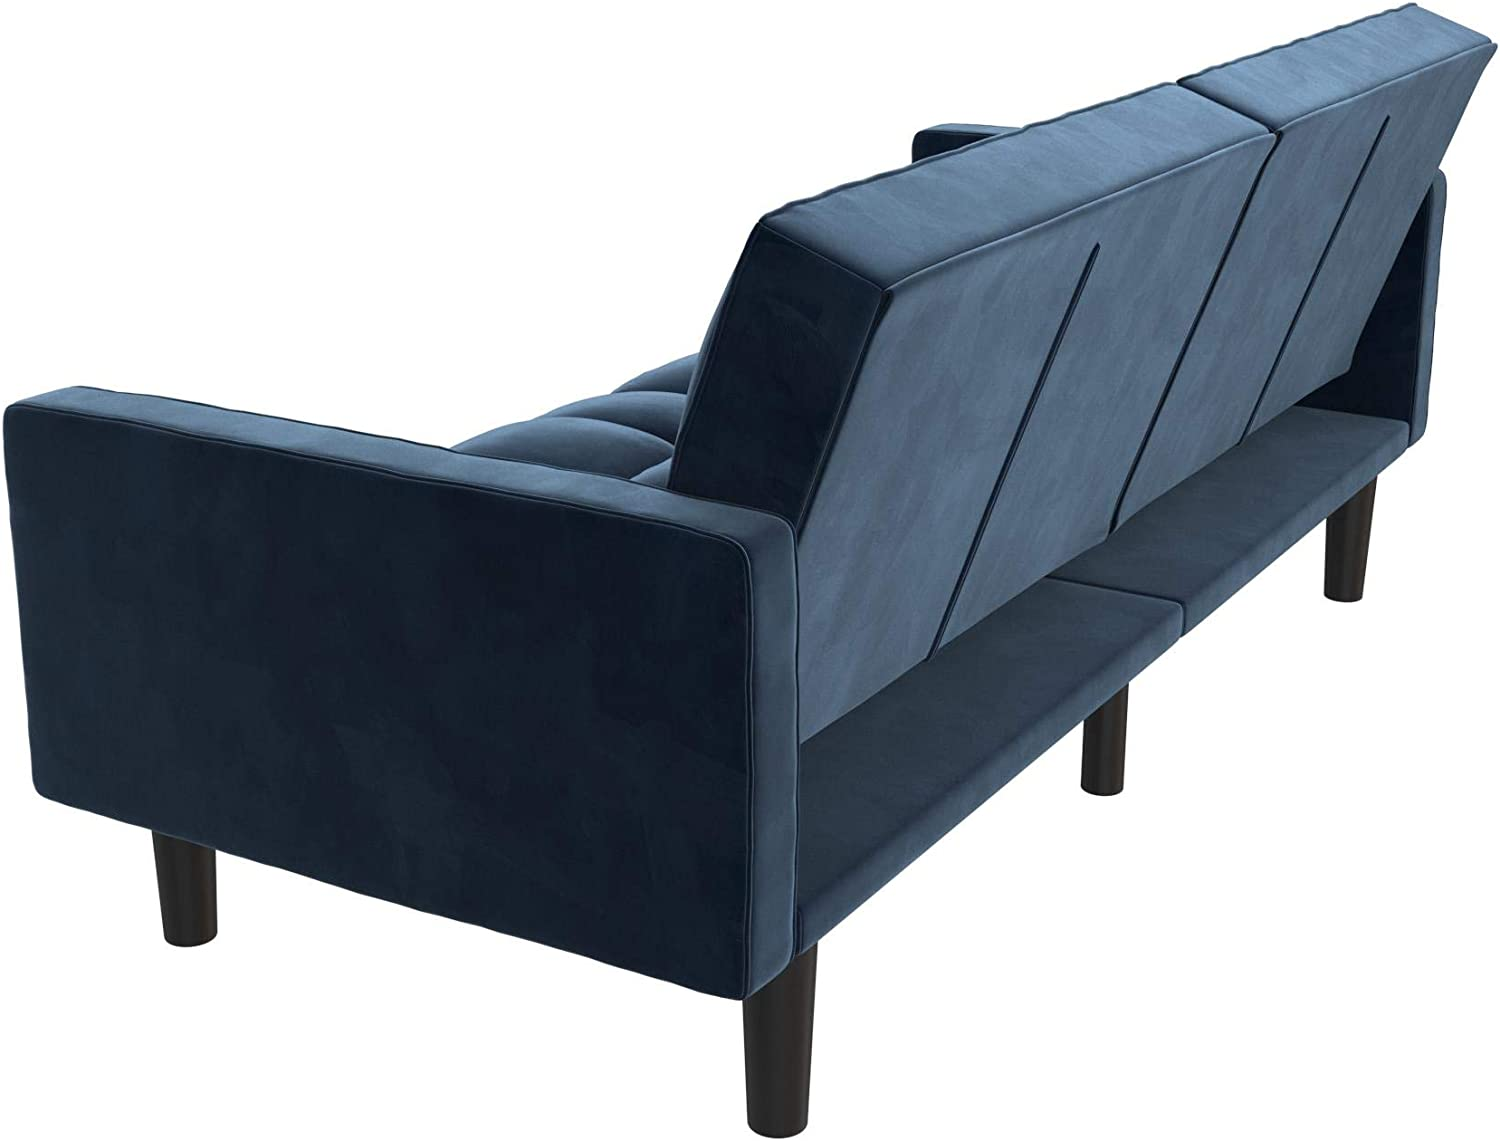 Blue DHP 2253619 Harper Convertible Sofa Sleeper Futon with Arms